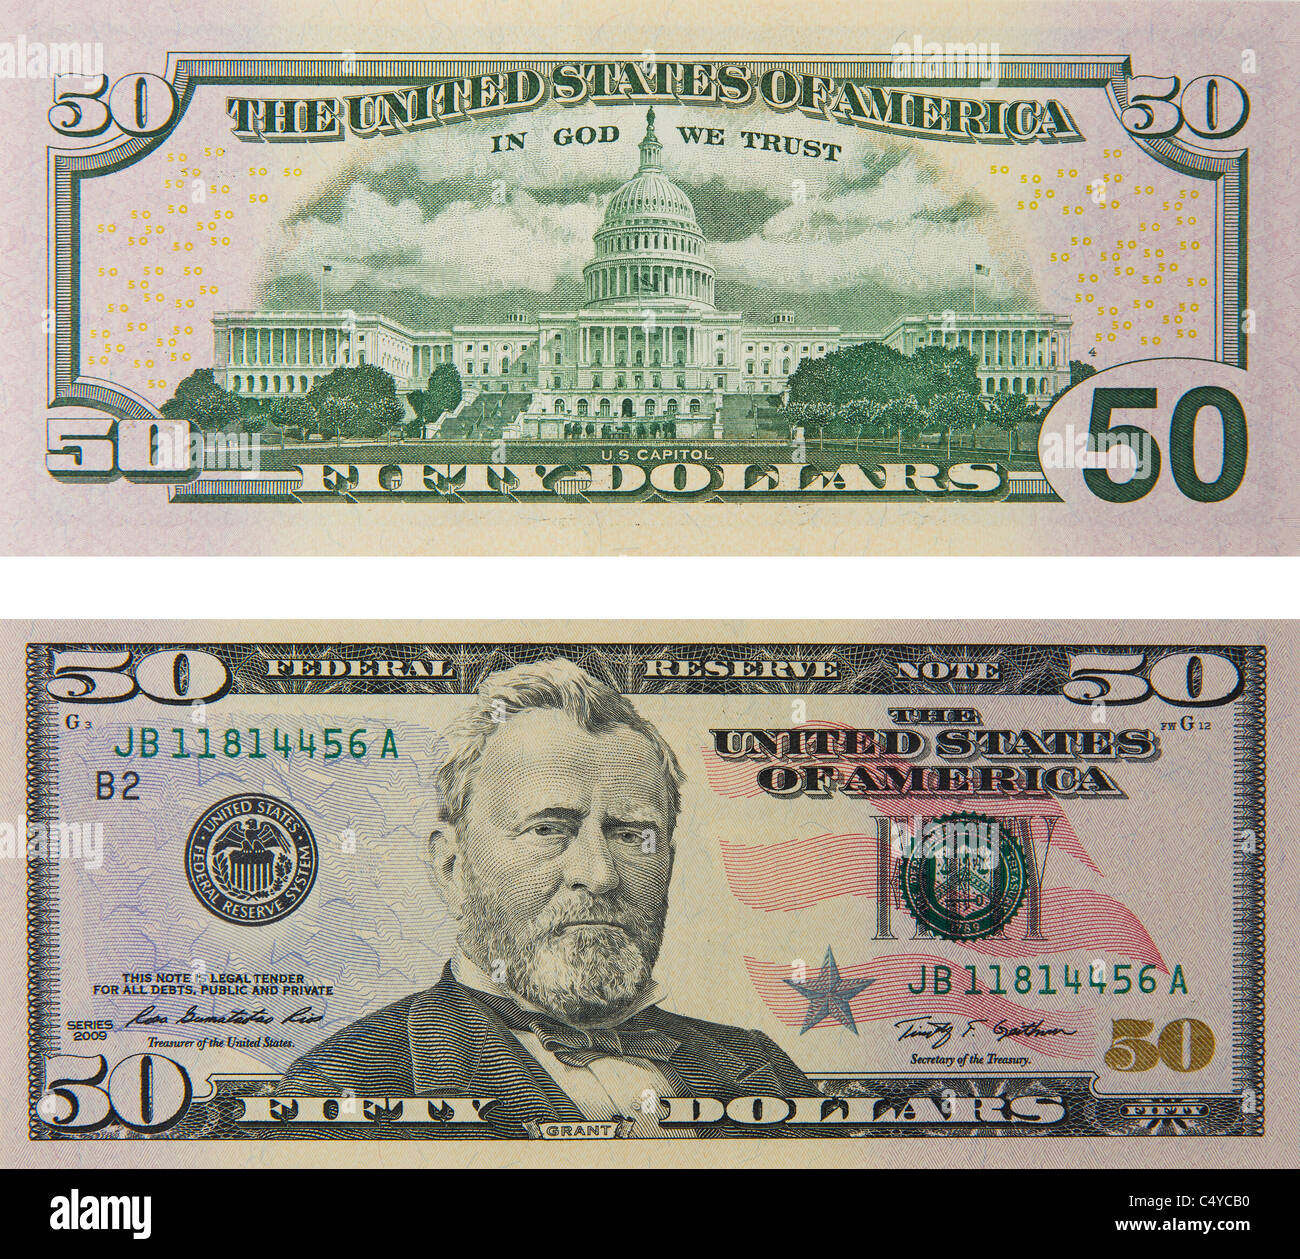 50 fifty dollar bill note bill's note's dollars - Stock Image